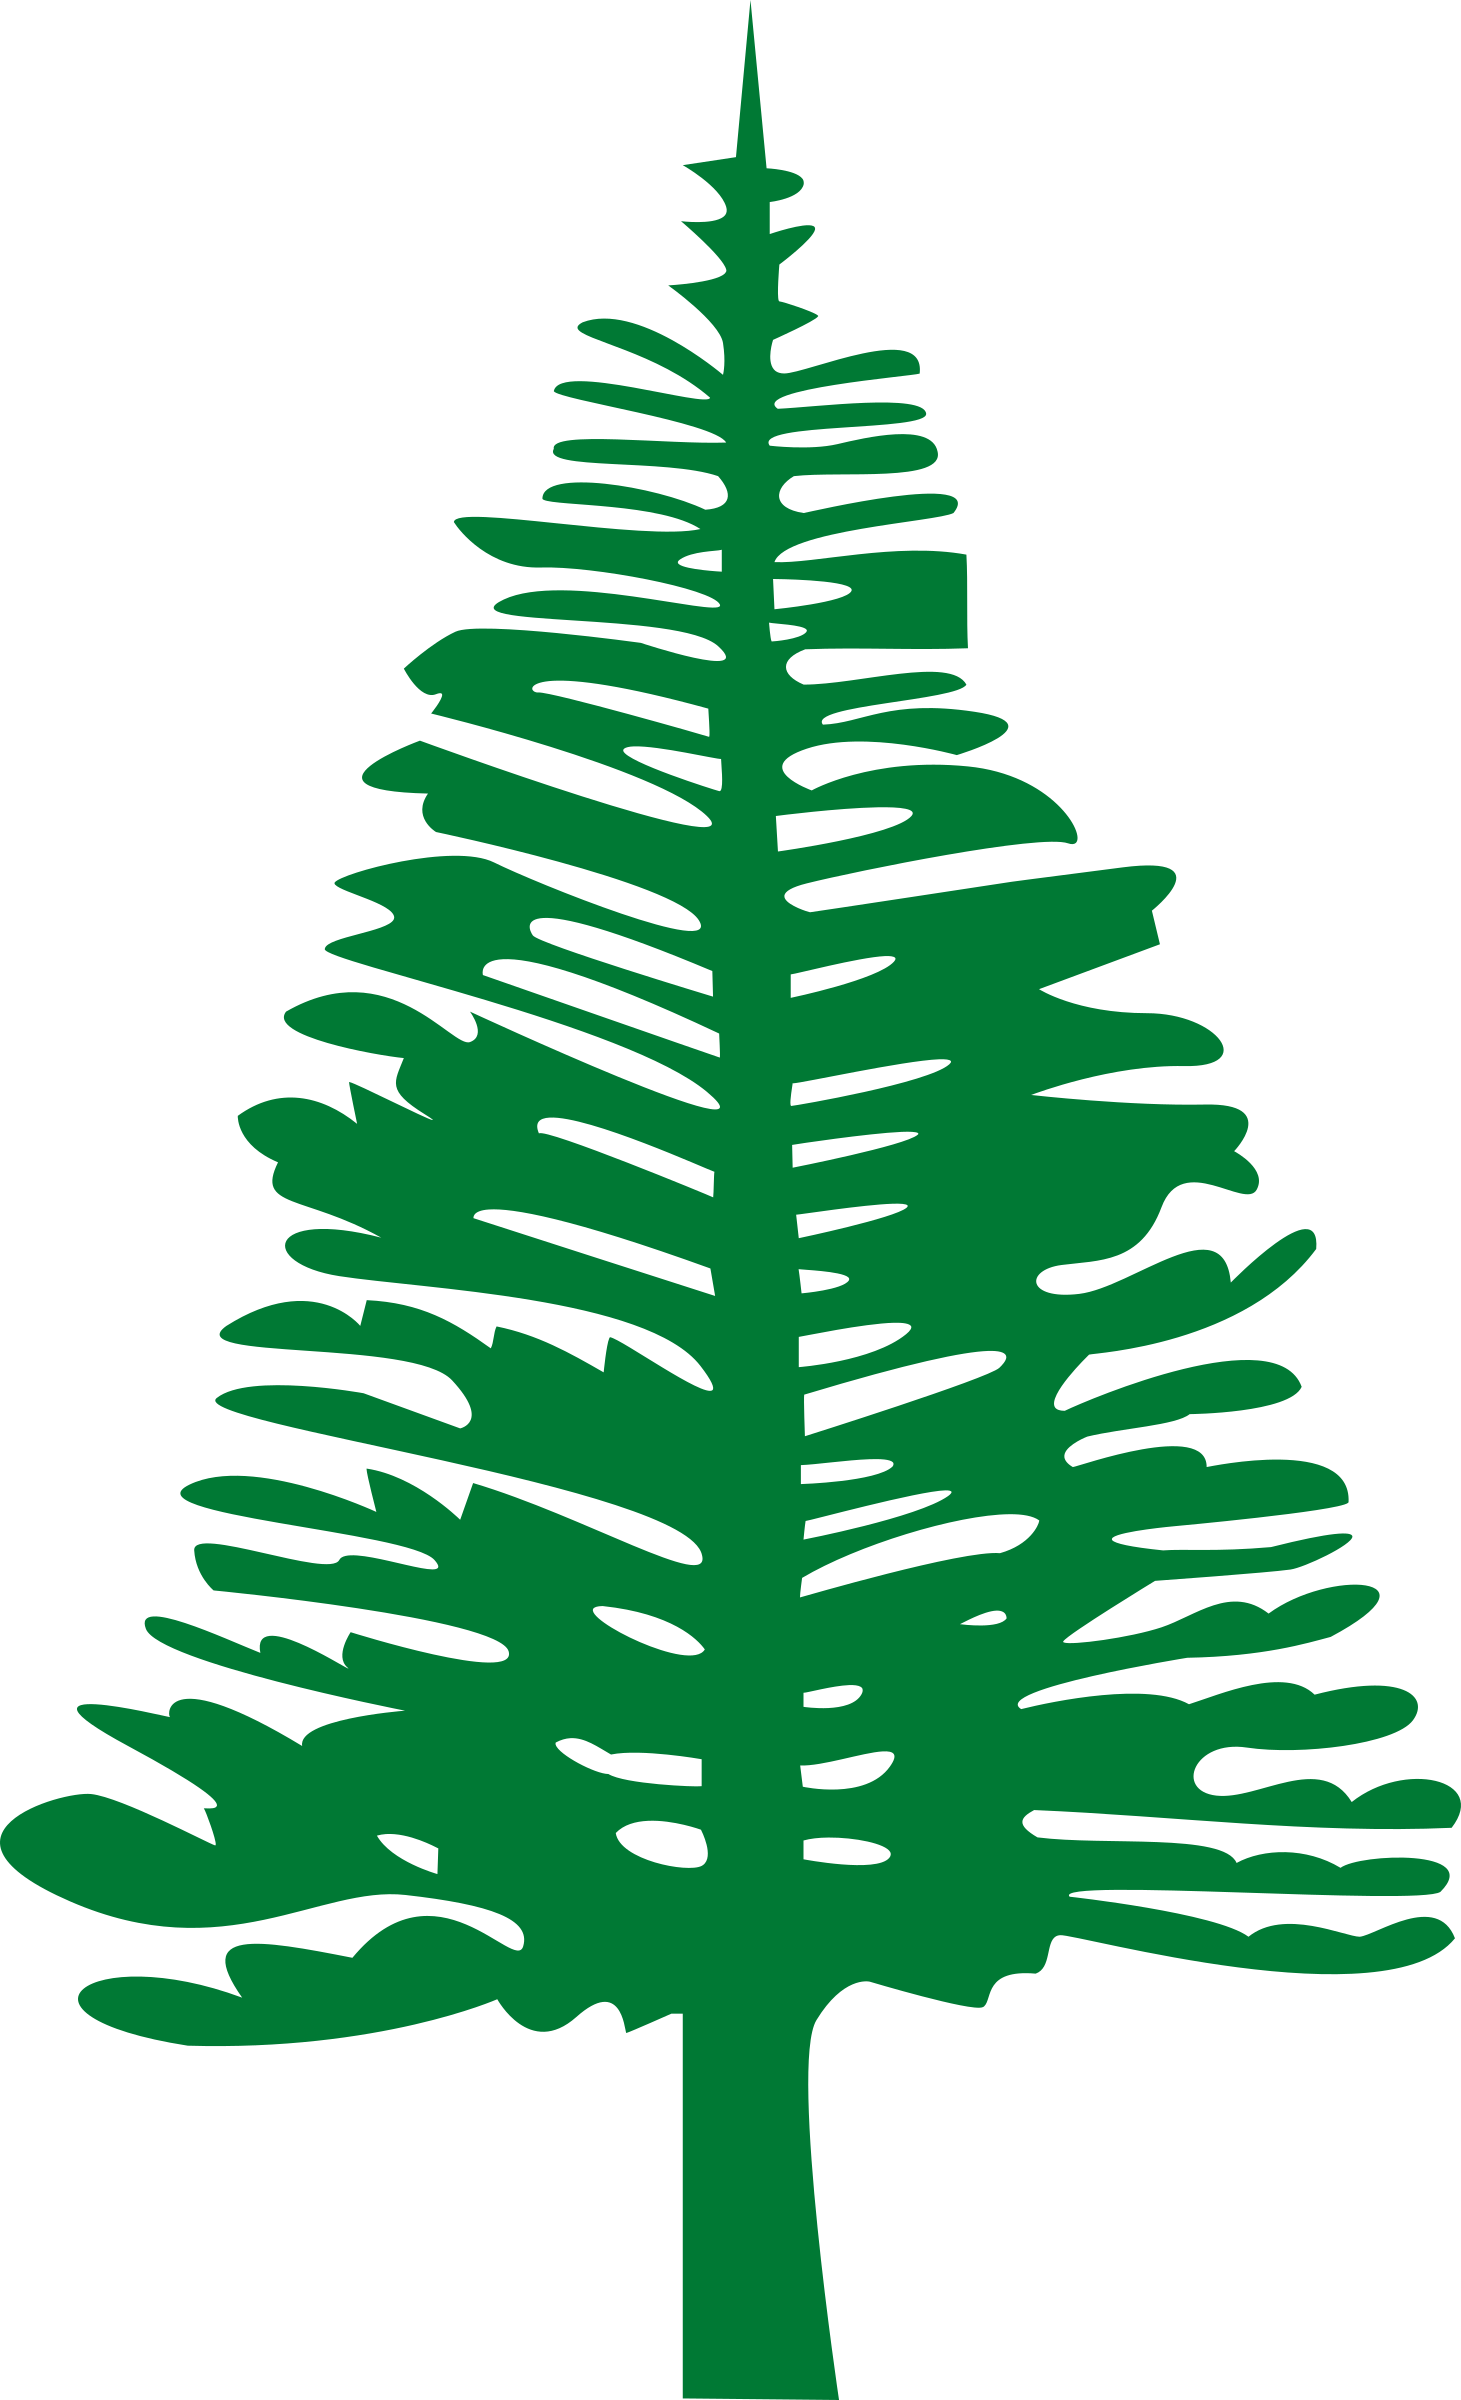 Norfolk island pine big. Tree clipart forest